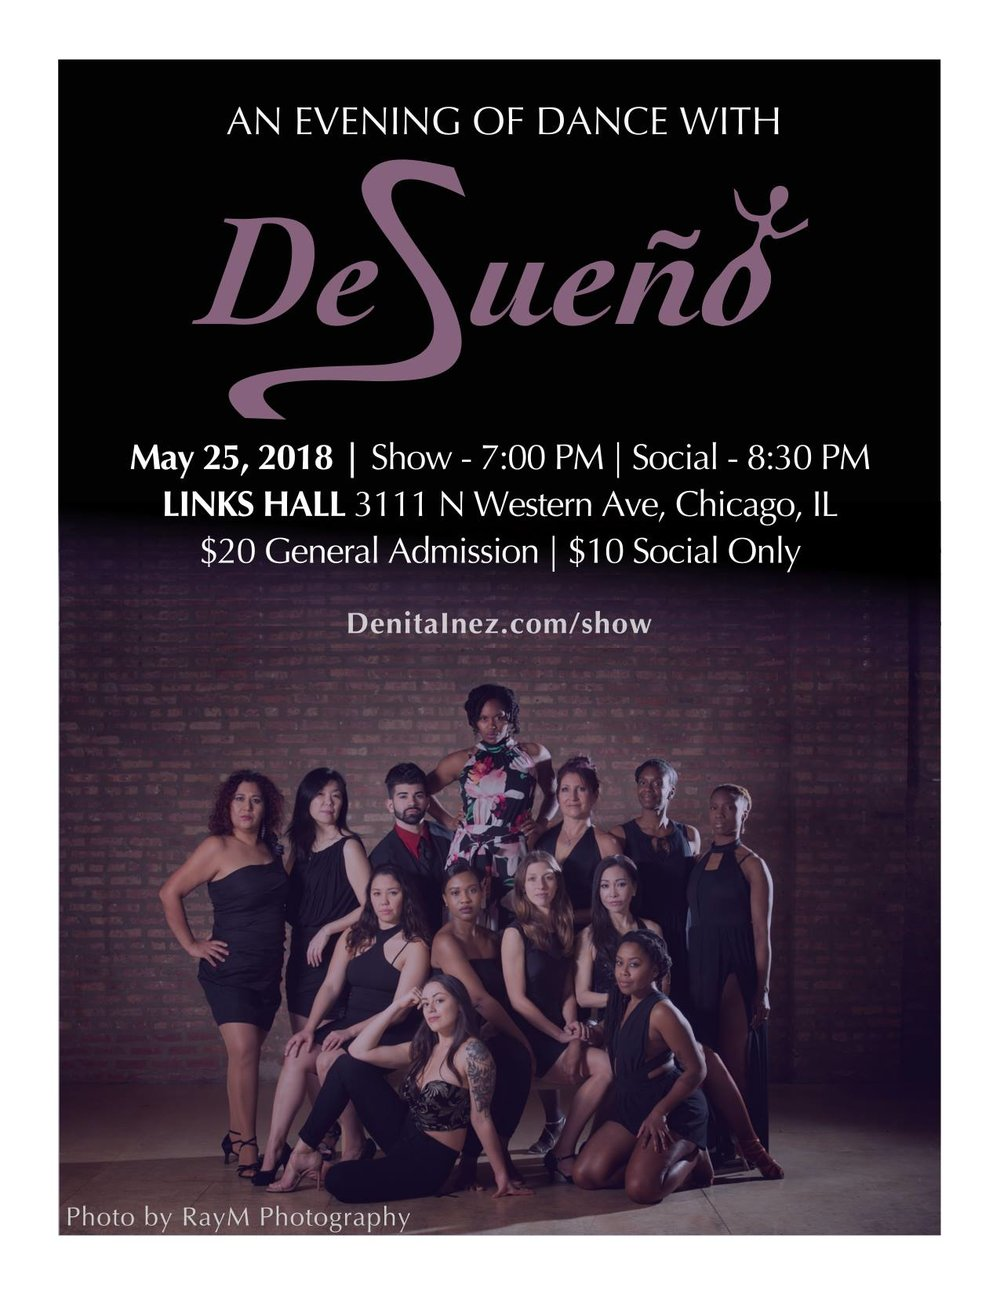 Ms. Gabriela:  Desueño Dance presents an evening of choreography featuring Desueño Vision, a Latin Jazz ensemble, and Desueño Latin. The performance showcases current Desueño repertoire. Afterwards there will be social dancing with Salsa, Bachata, and ChaCha. -